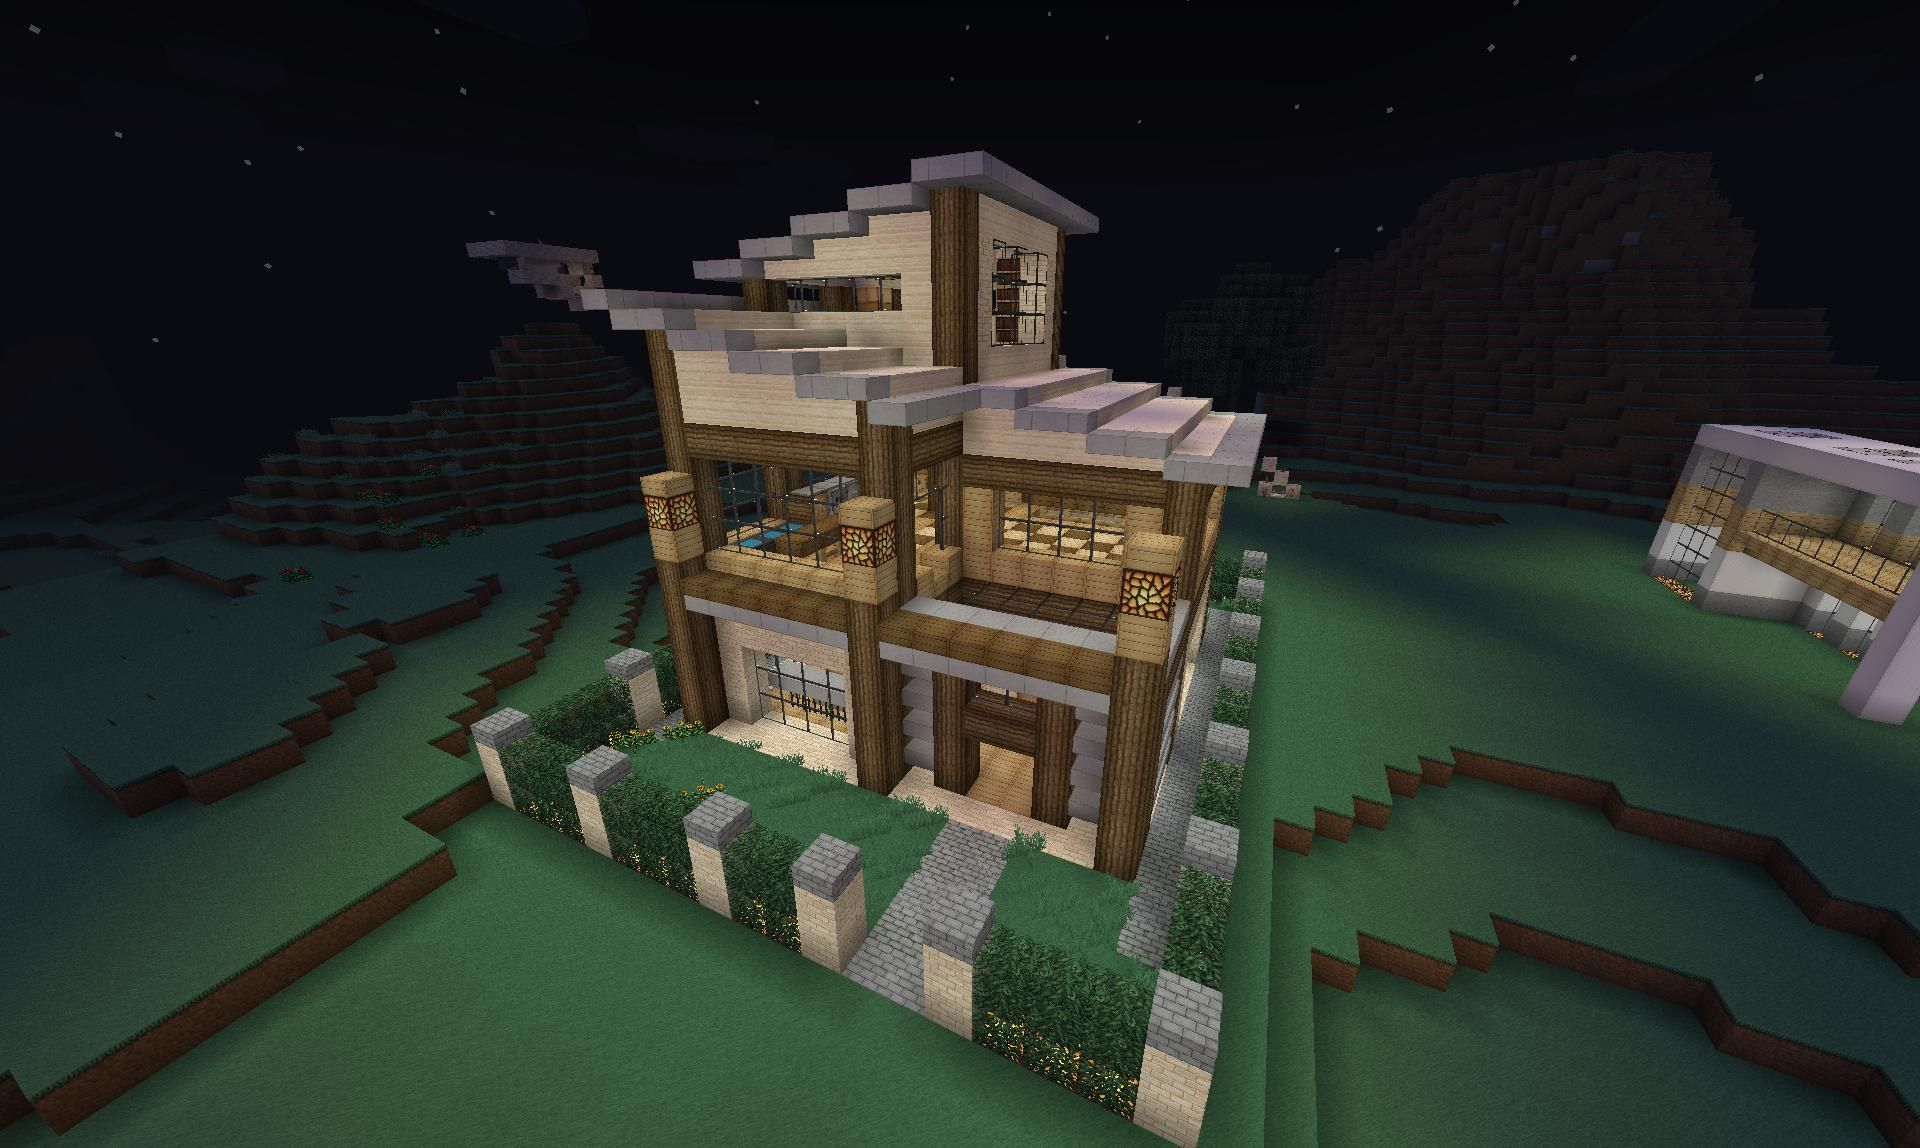 Modern Minecraft House! Nice! If you need a texture/resource